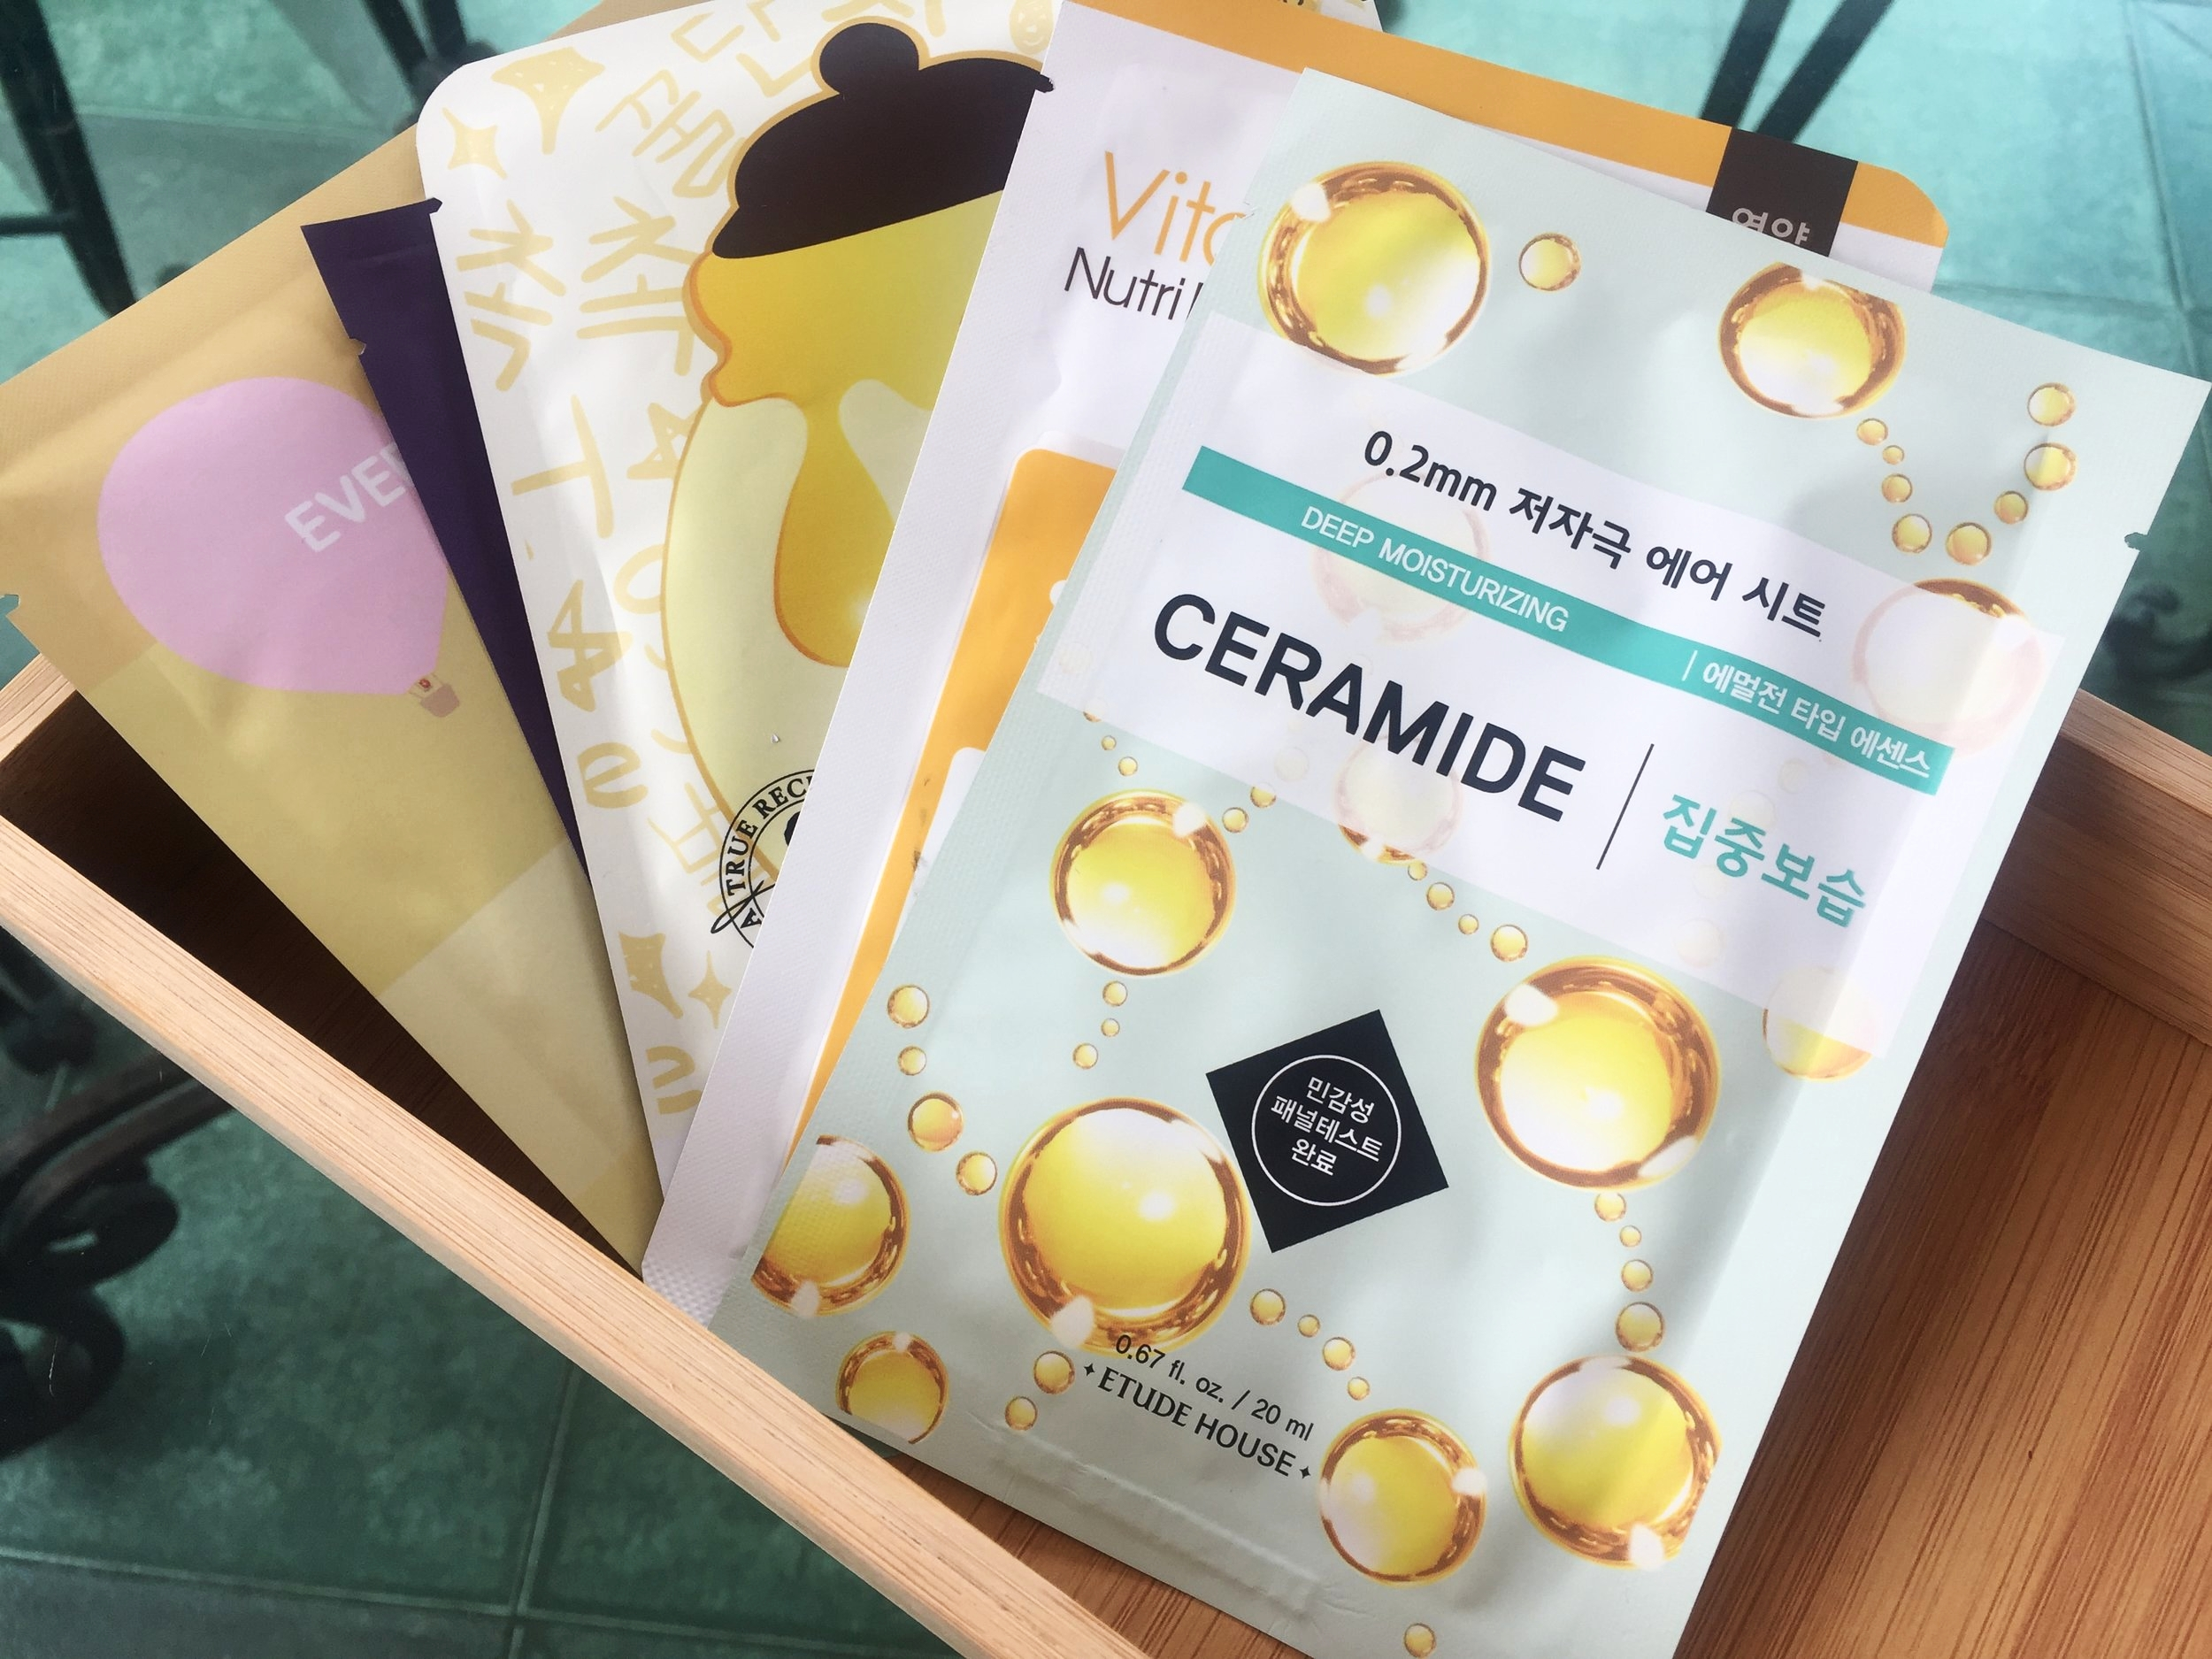 Ceramides can be used in almost any part of your skincare routine, whether as a moisturizer, a serum, or even as a sheet mask!